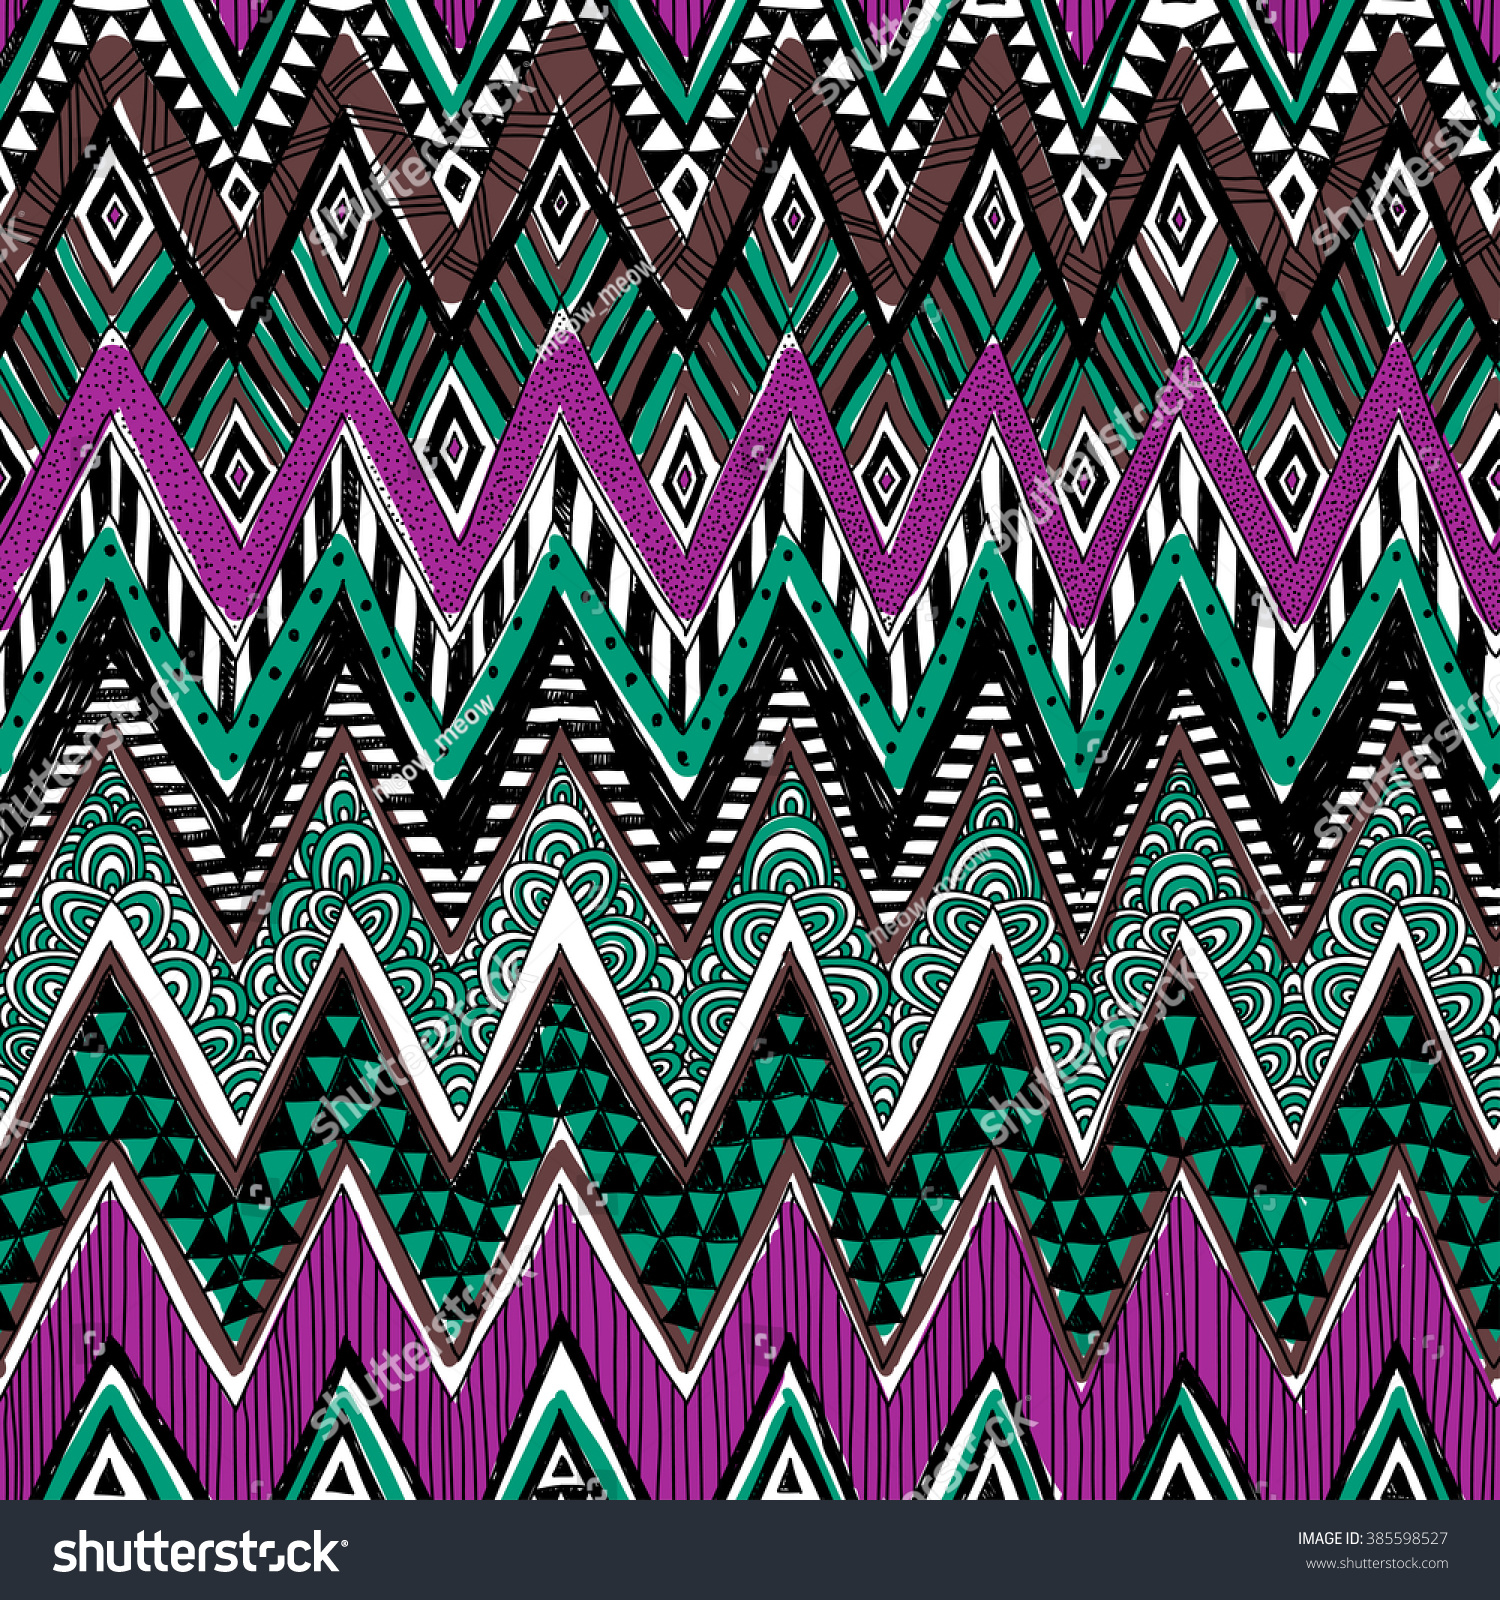 Background geometric mexican patterns seamless vector zigzag maya - Colored Zigzag Tribal Vector Seamless Pattern With Doodle Elements Aztec Abstract Geometric Art Print